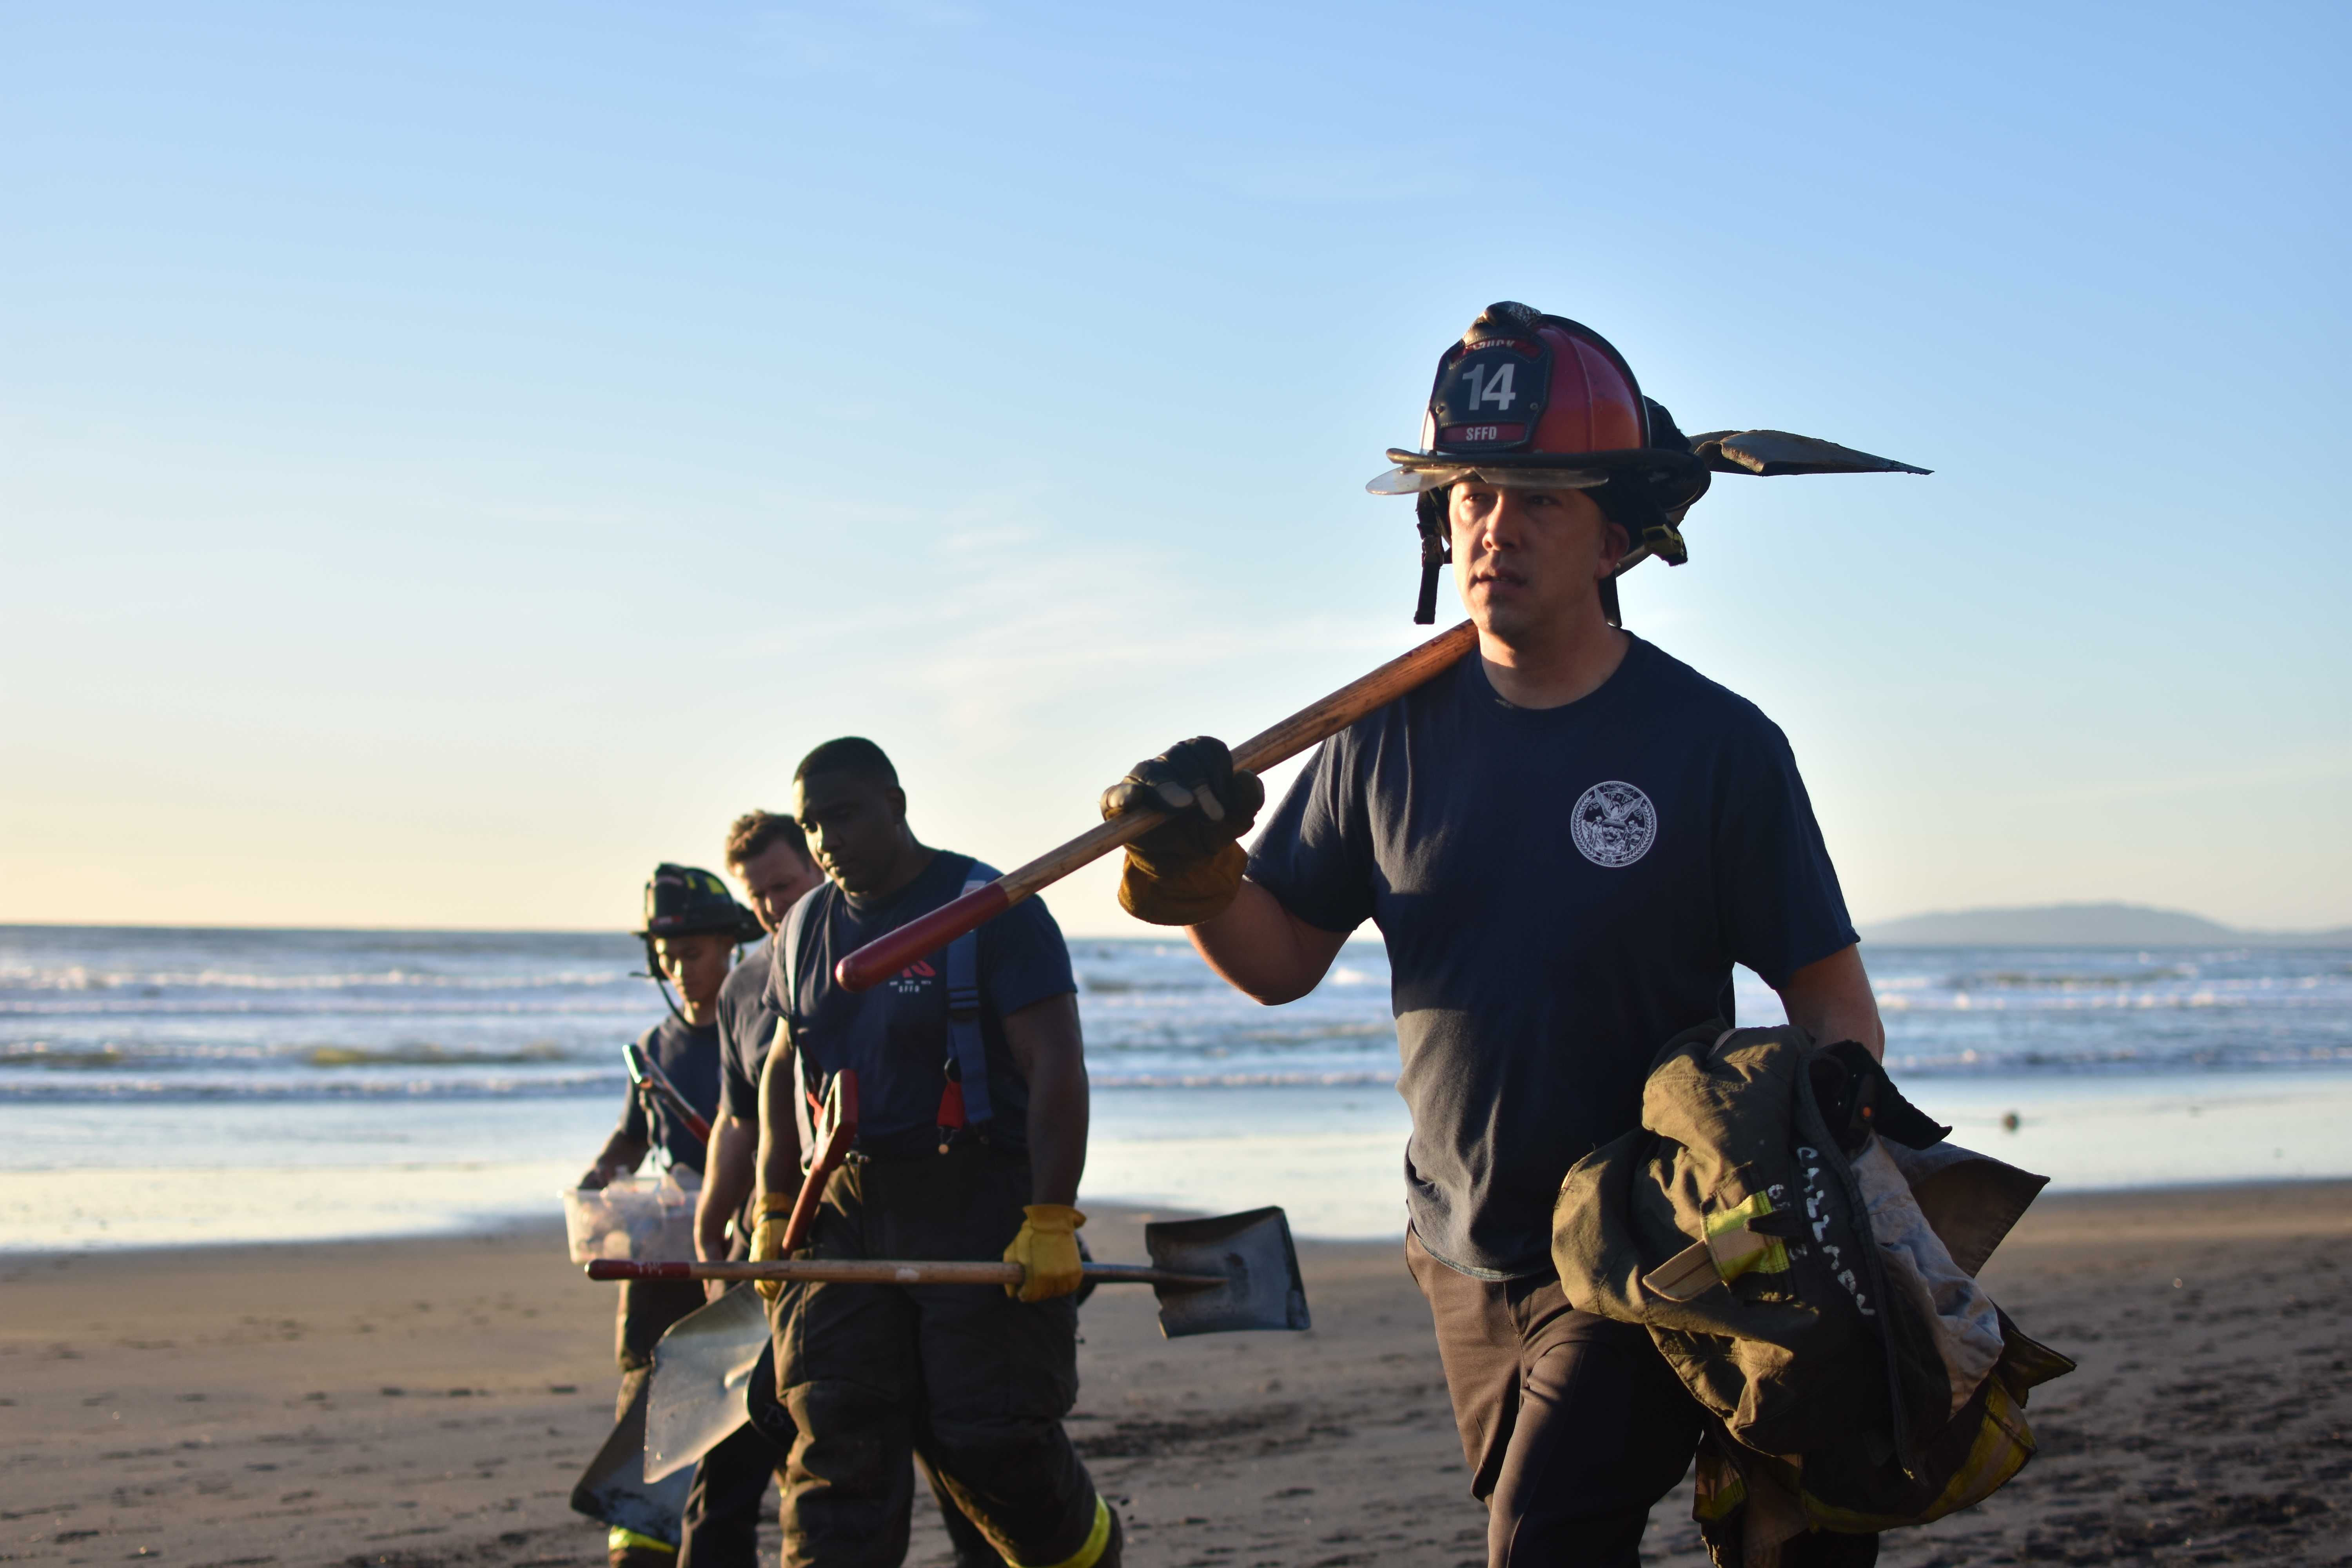 Rescue teams continue search for missing woman in Fort Funston landslide